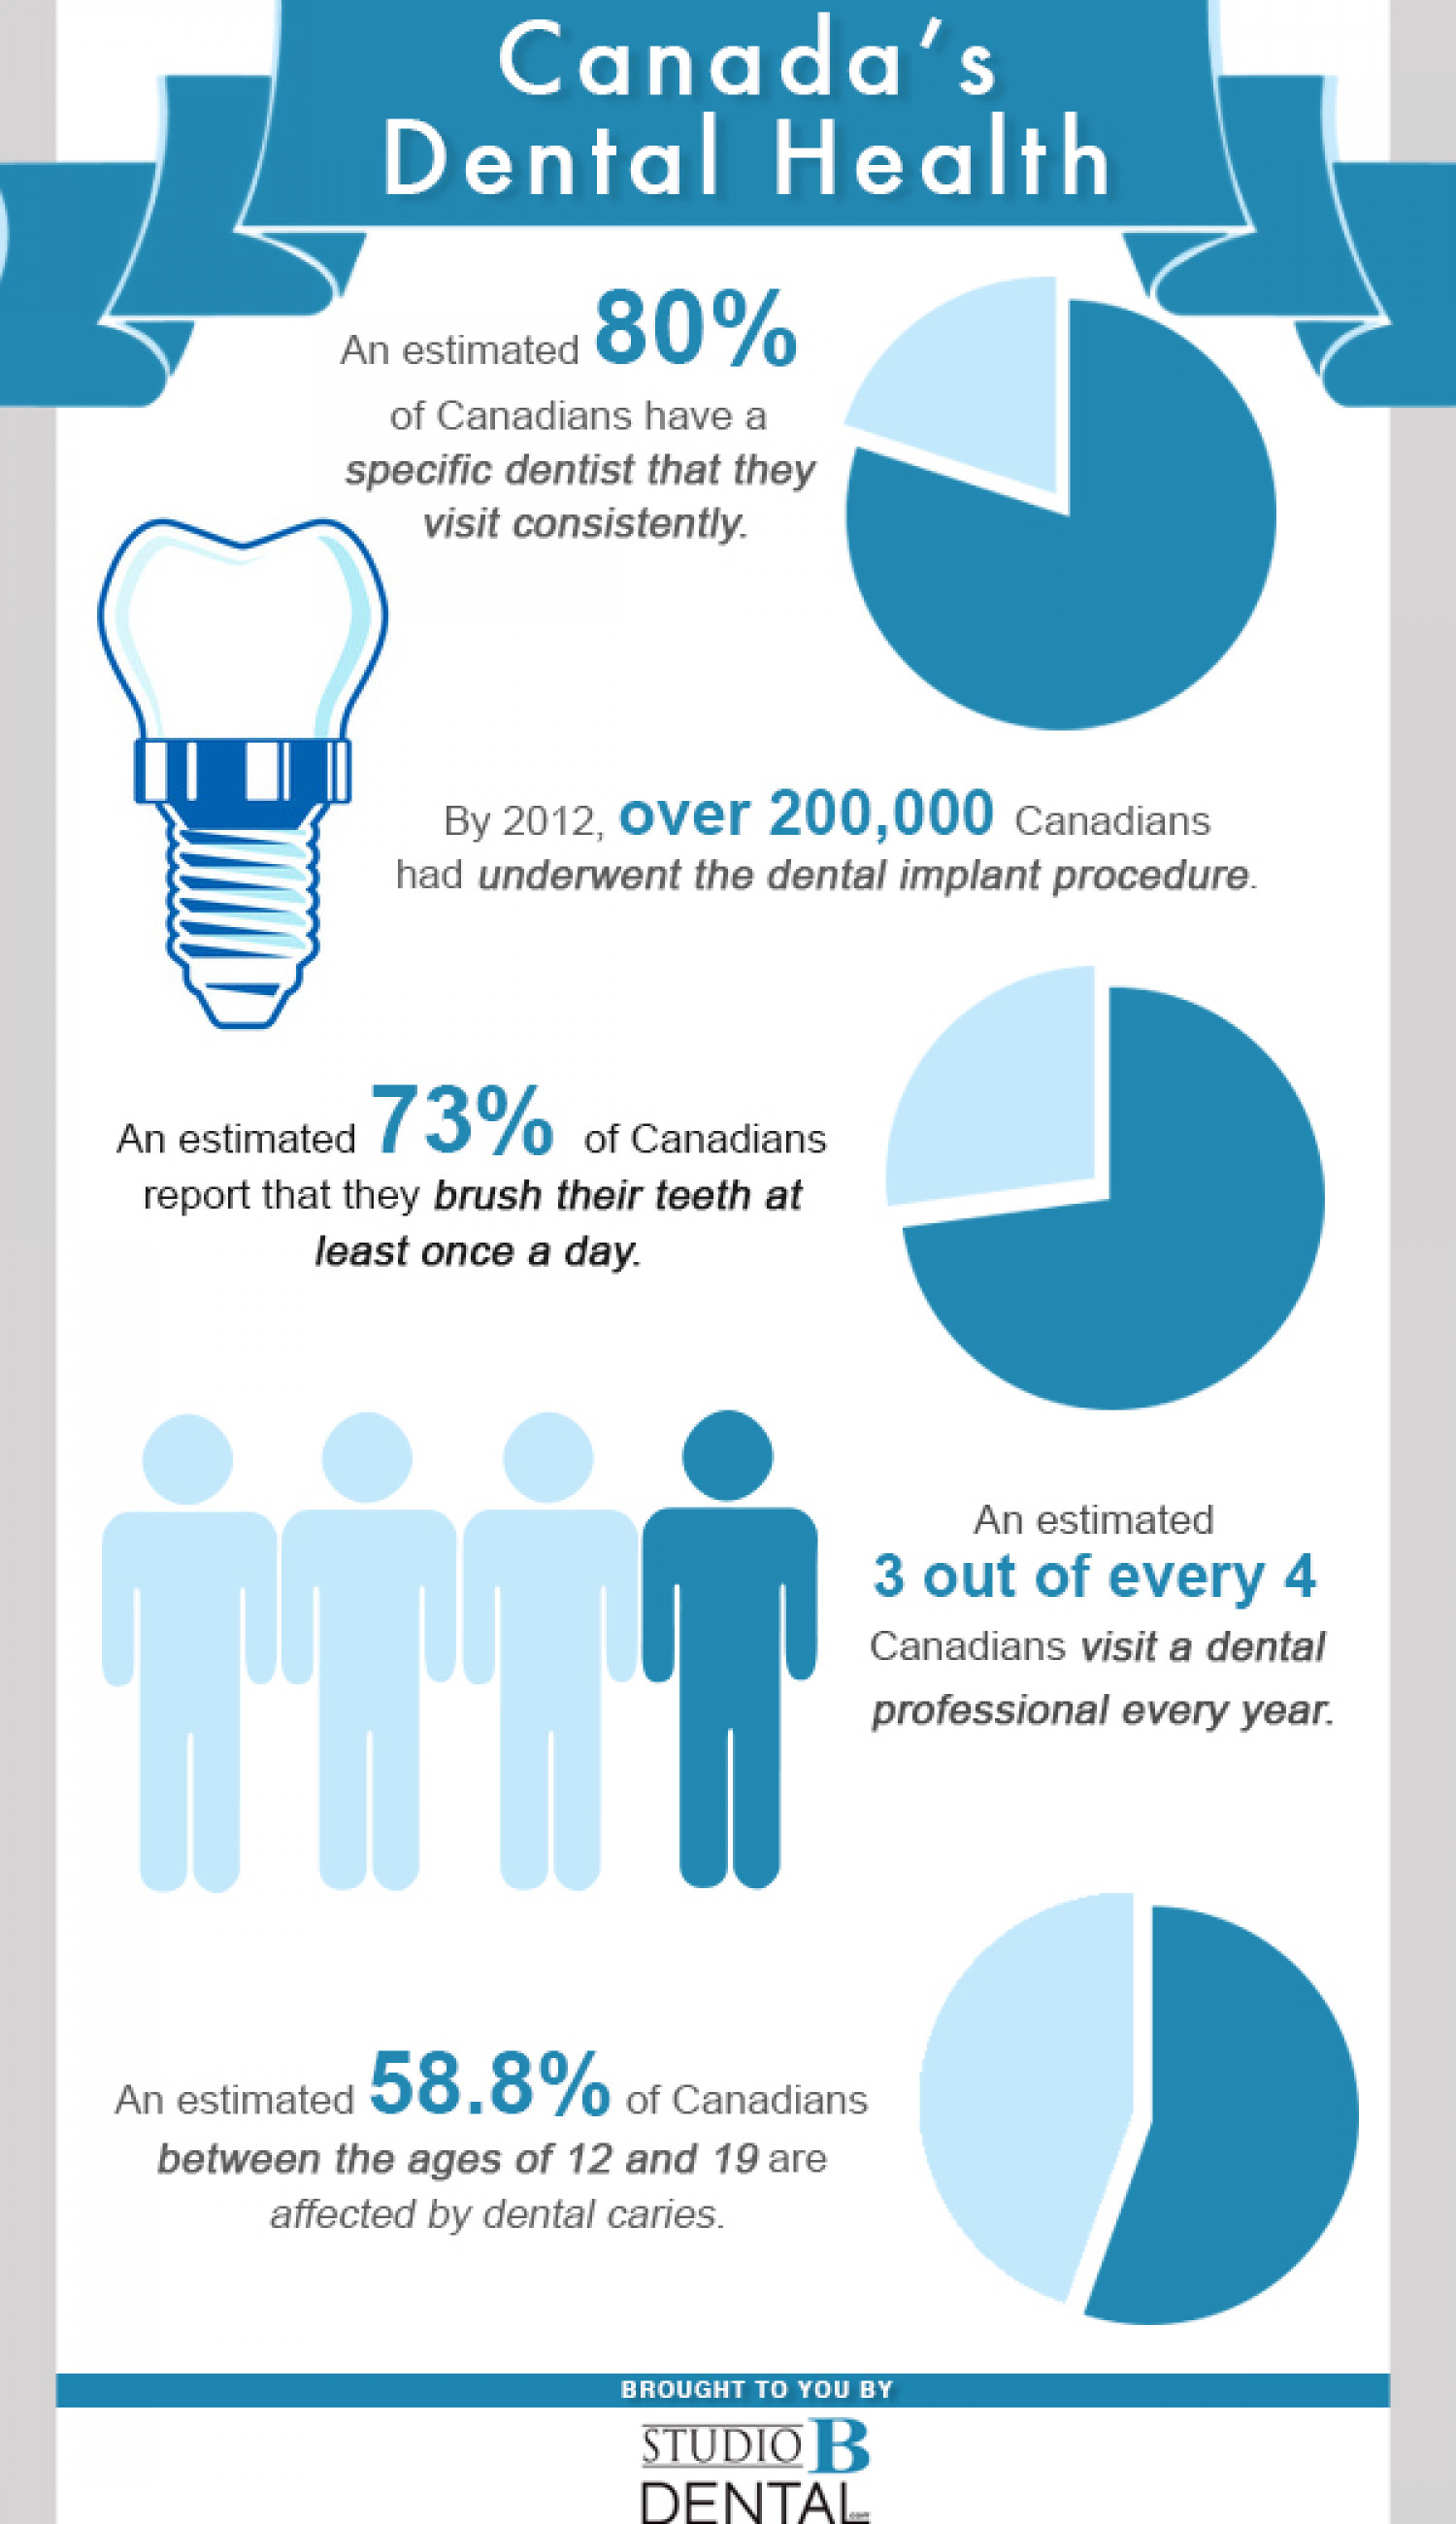 Canada's Dental Health Infographic